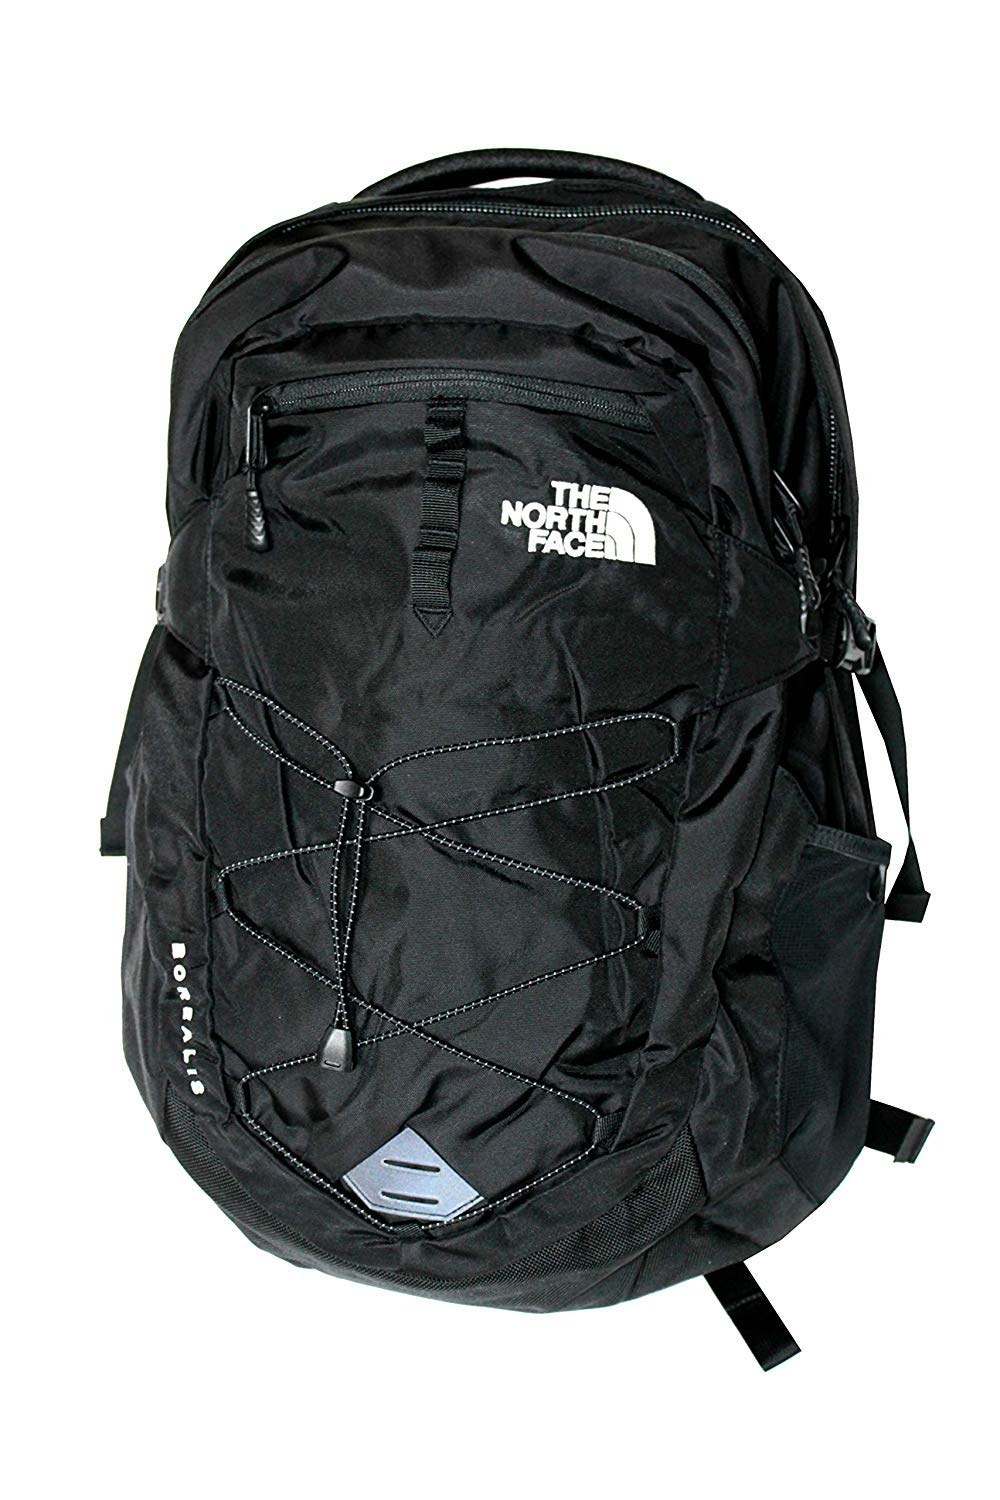 The North Face Unisex Borealis Backpack Laptop Daypack RTO TNF Black by The North Face